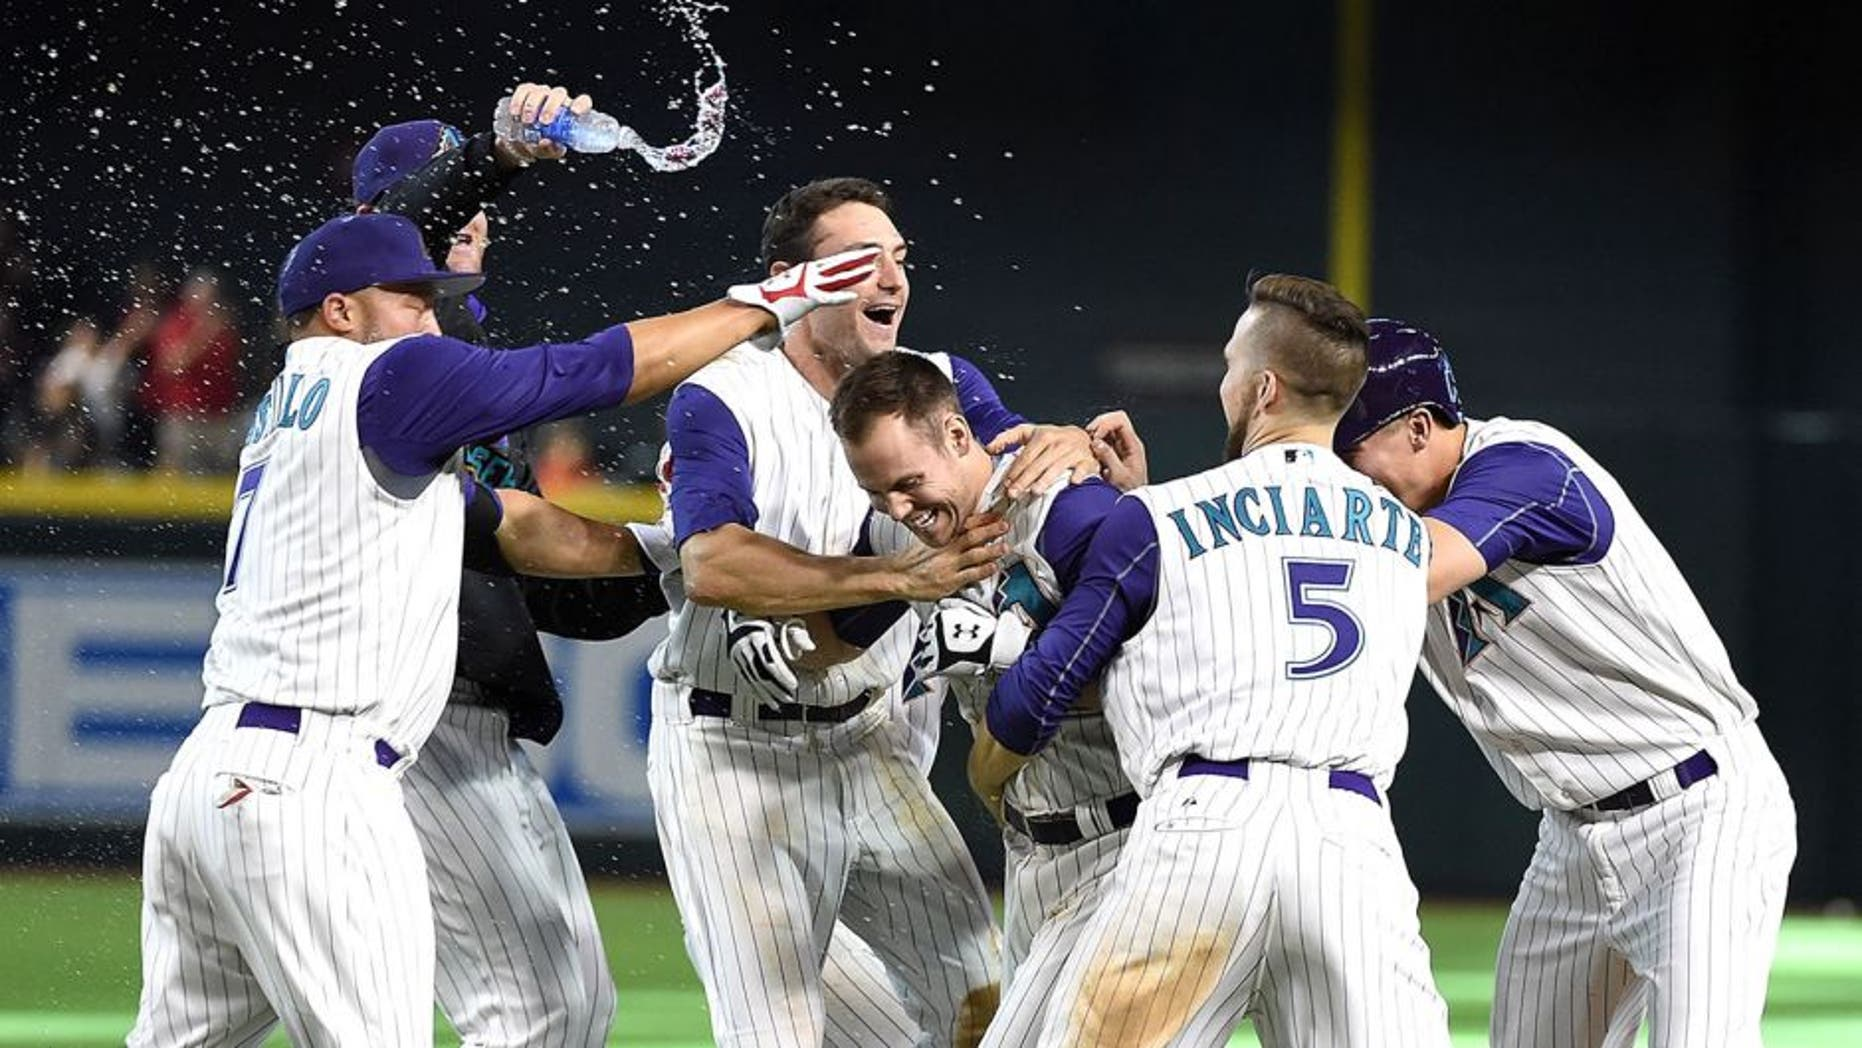 PHOENIX, AZ - AUGUST 09: Chris Owings #16 of the Arizona Diamondbacks celebrates with teammates after hitting a walk off single in the tenth inning against the Cincinnati Reds at Chase Field on August 9, 2015 in Phoenix, Arizona. Arizona won 4-3. (Photo by Norm Hall/Getty Images)